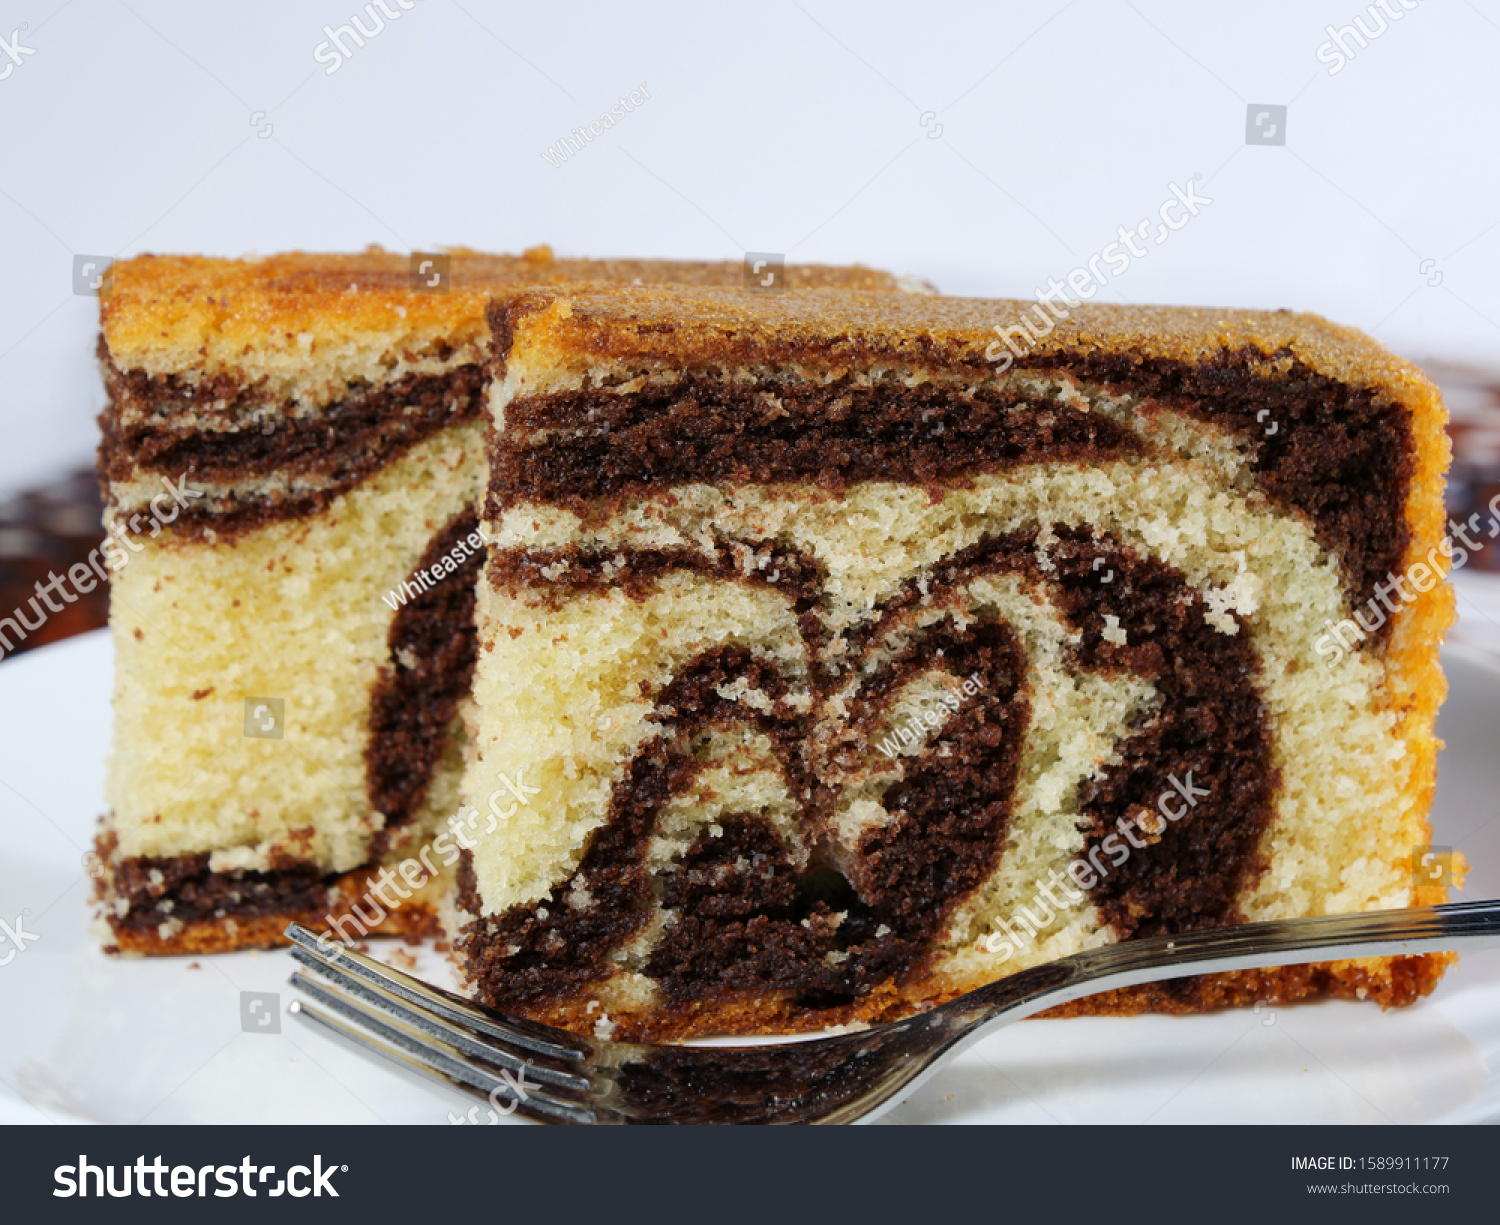 Chocolate marble cake slices on white plate